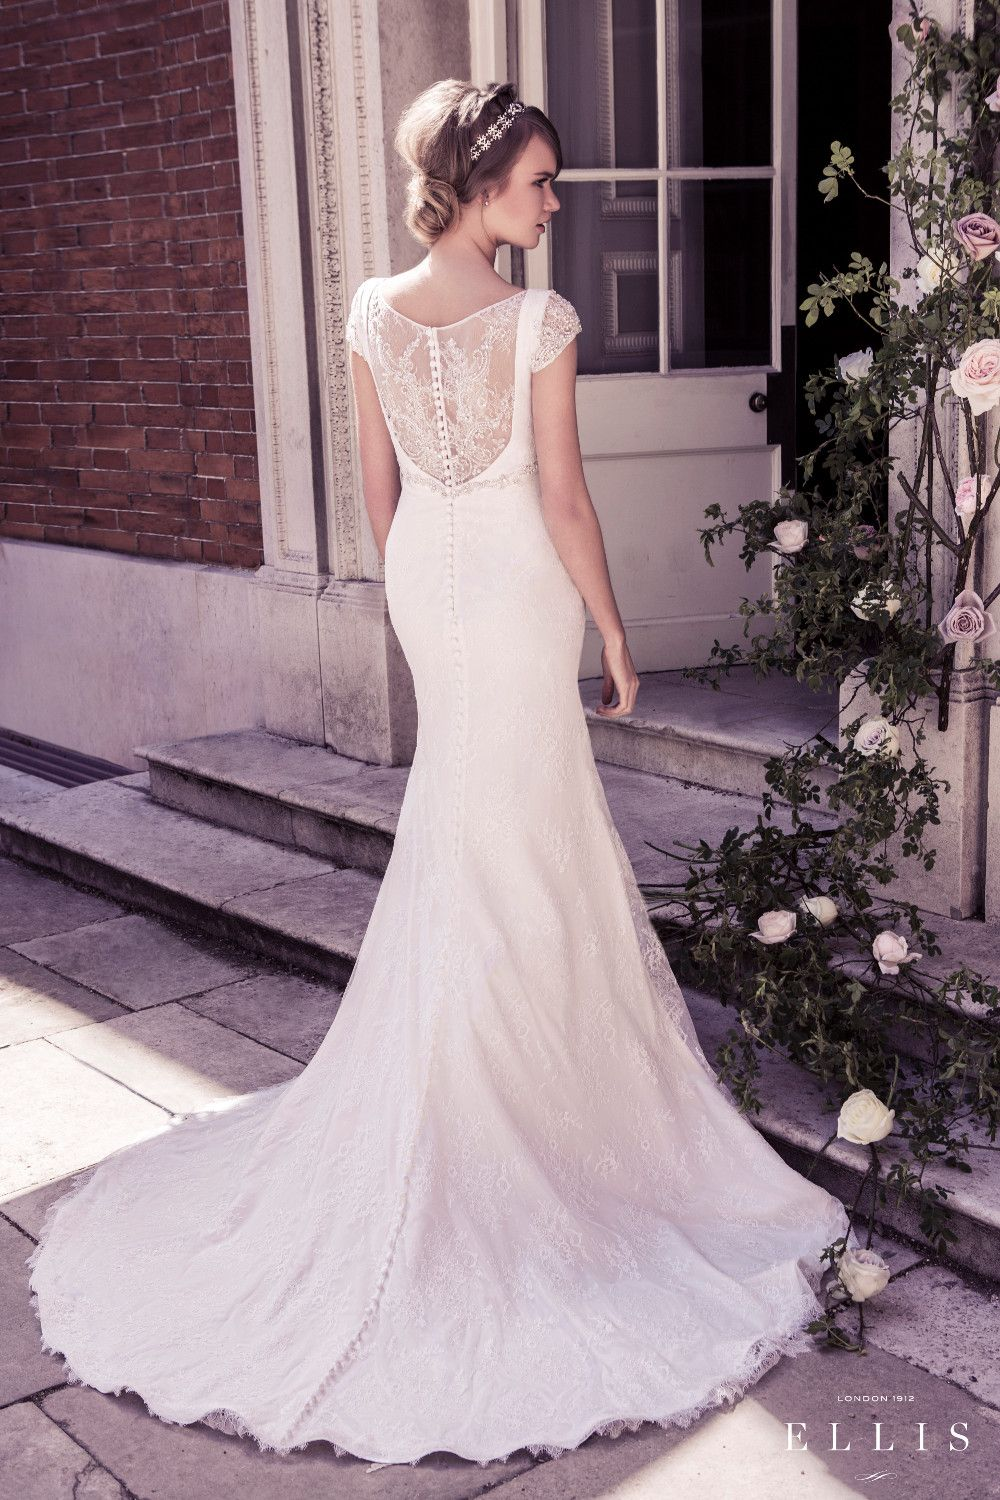 The bridal outlet ireland bridal wear dublin bridal shop in the bridal outlet ireland bridal wear dublin bridal shop in dublin ombrellifo Choice Image